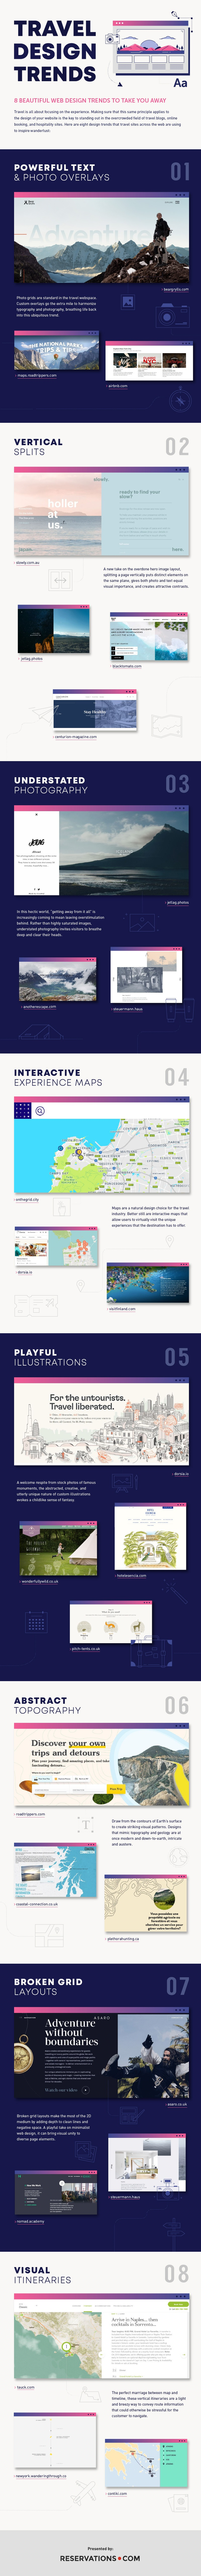 Travel Design Trends Infographic by Reservations.com